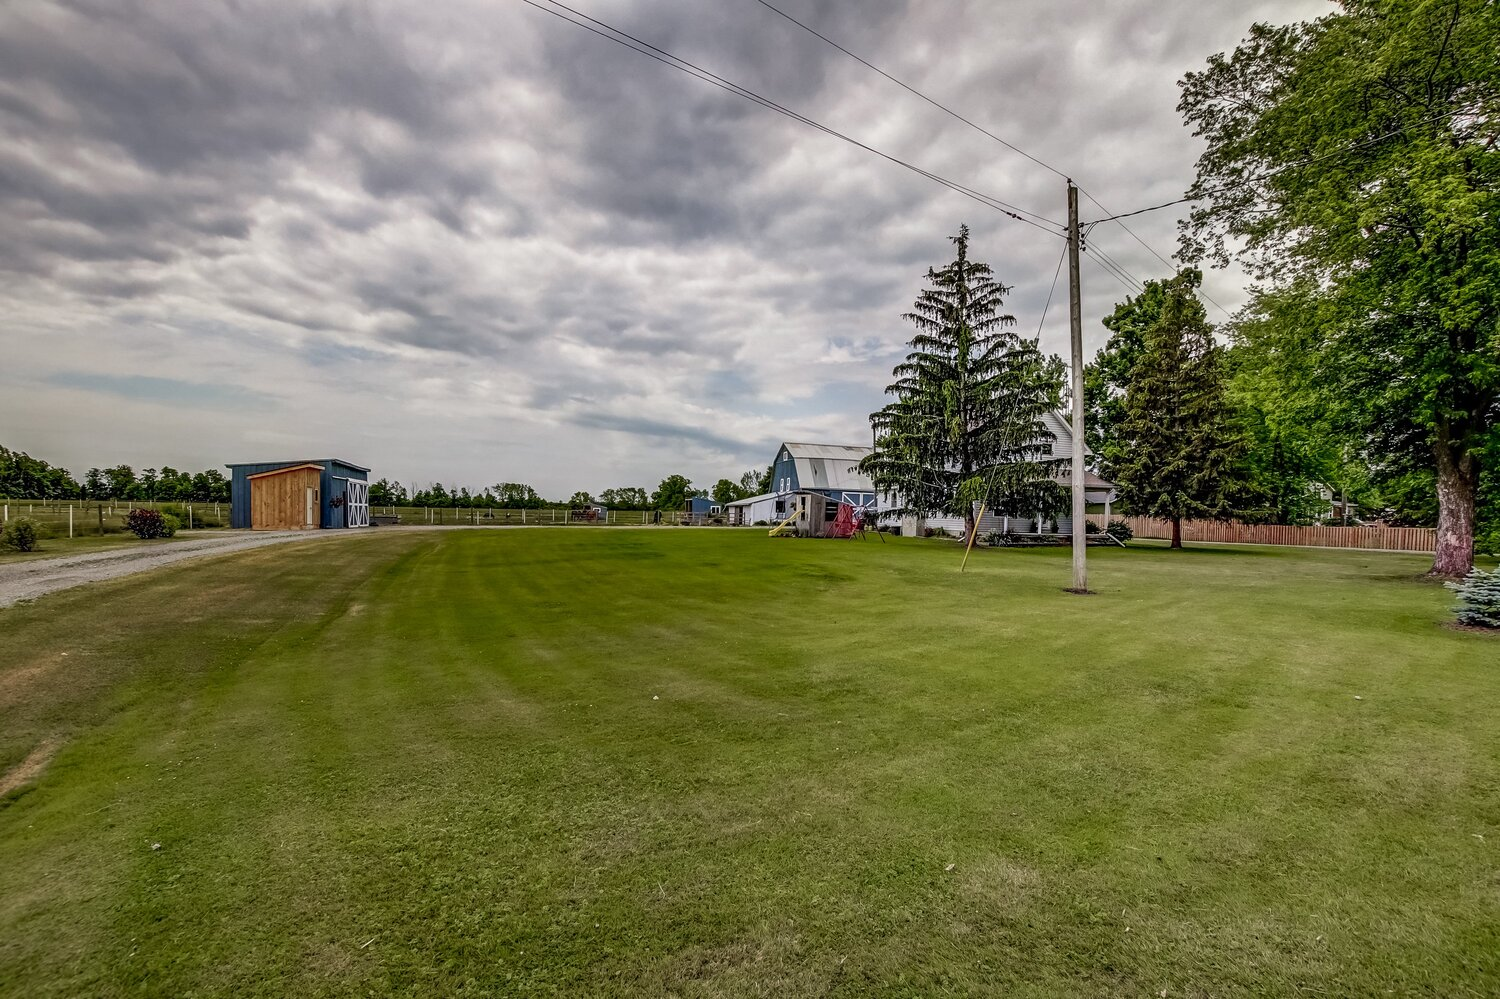 005-Images_006